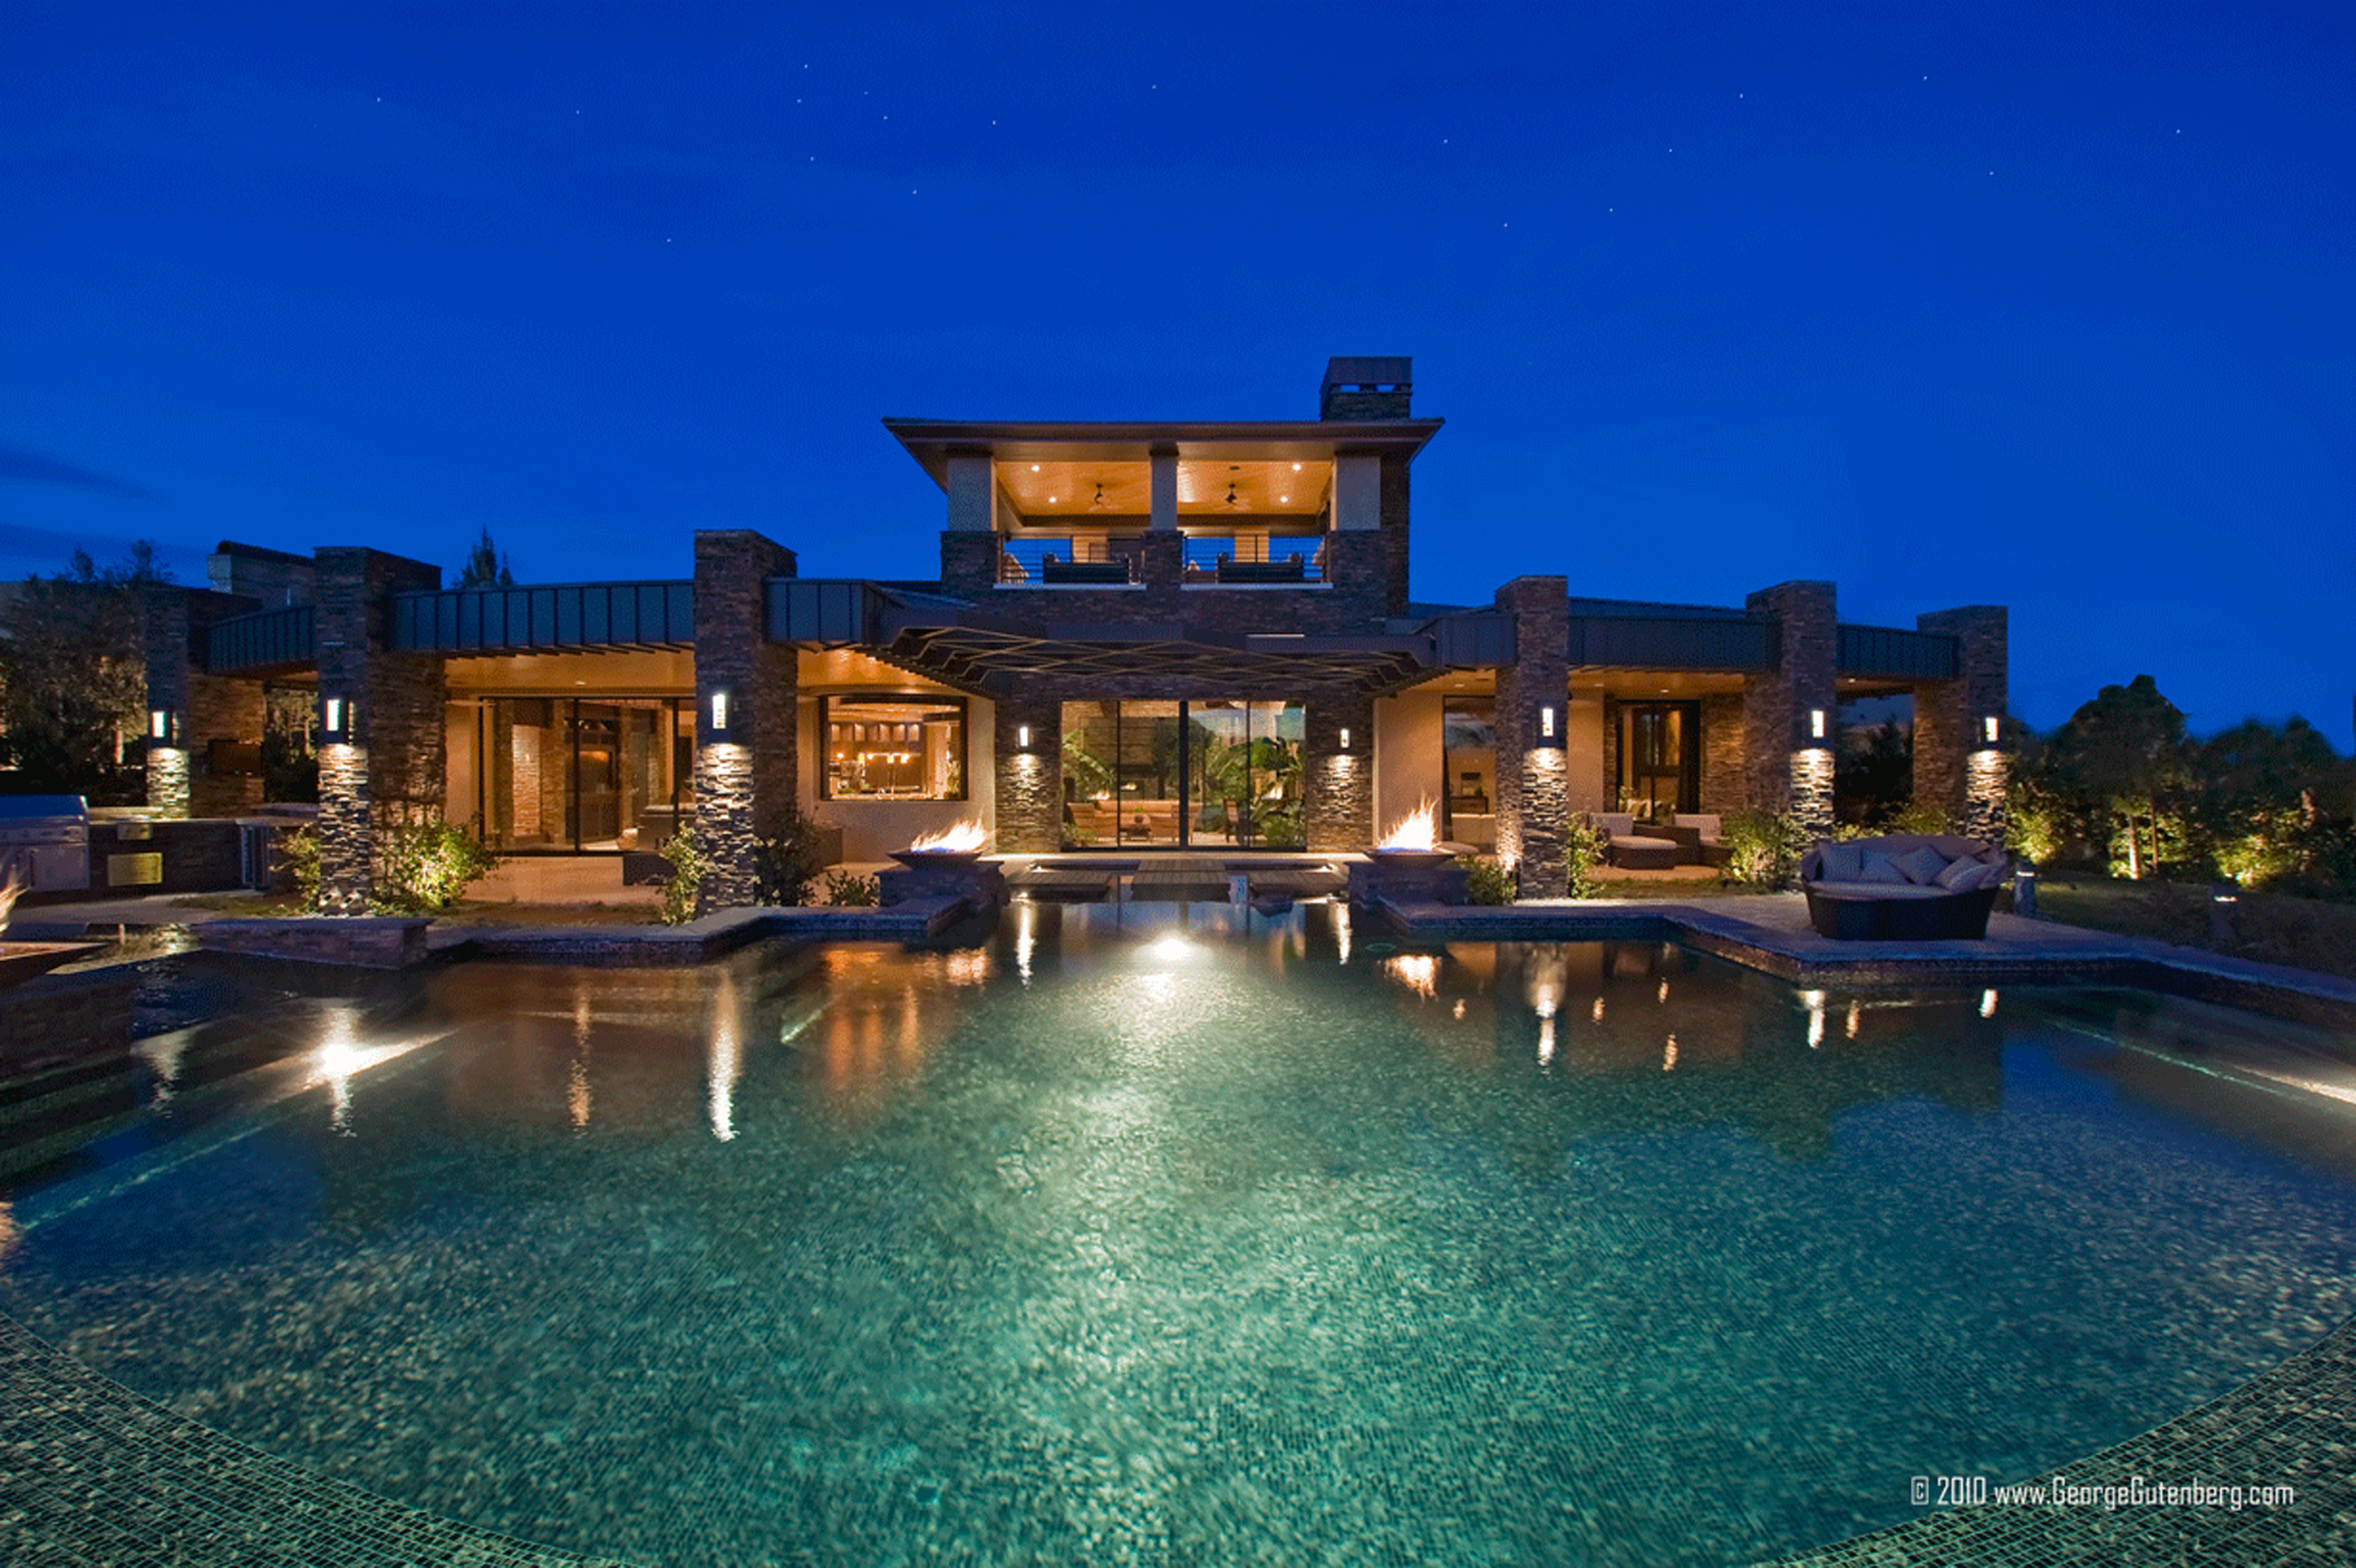 Luxury House Design Inspiration With Brown Wall Brown Stone Pillars And Green Pool Luxury House Design Inspiration (Image 65 of 123)